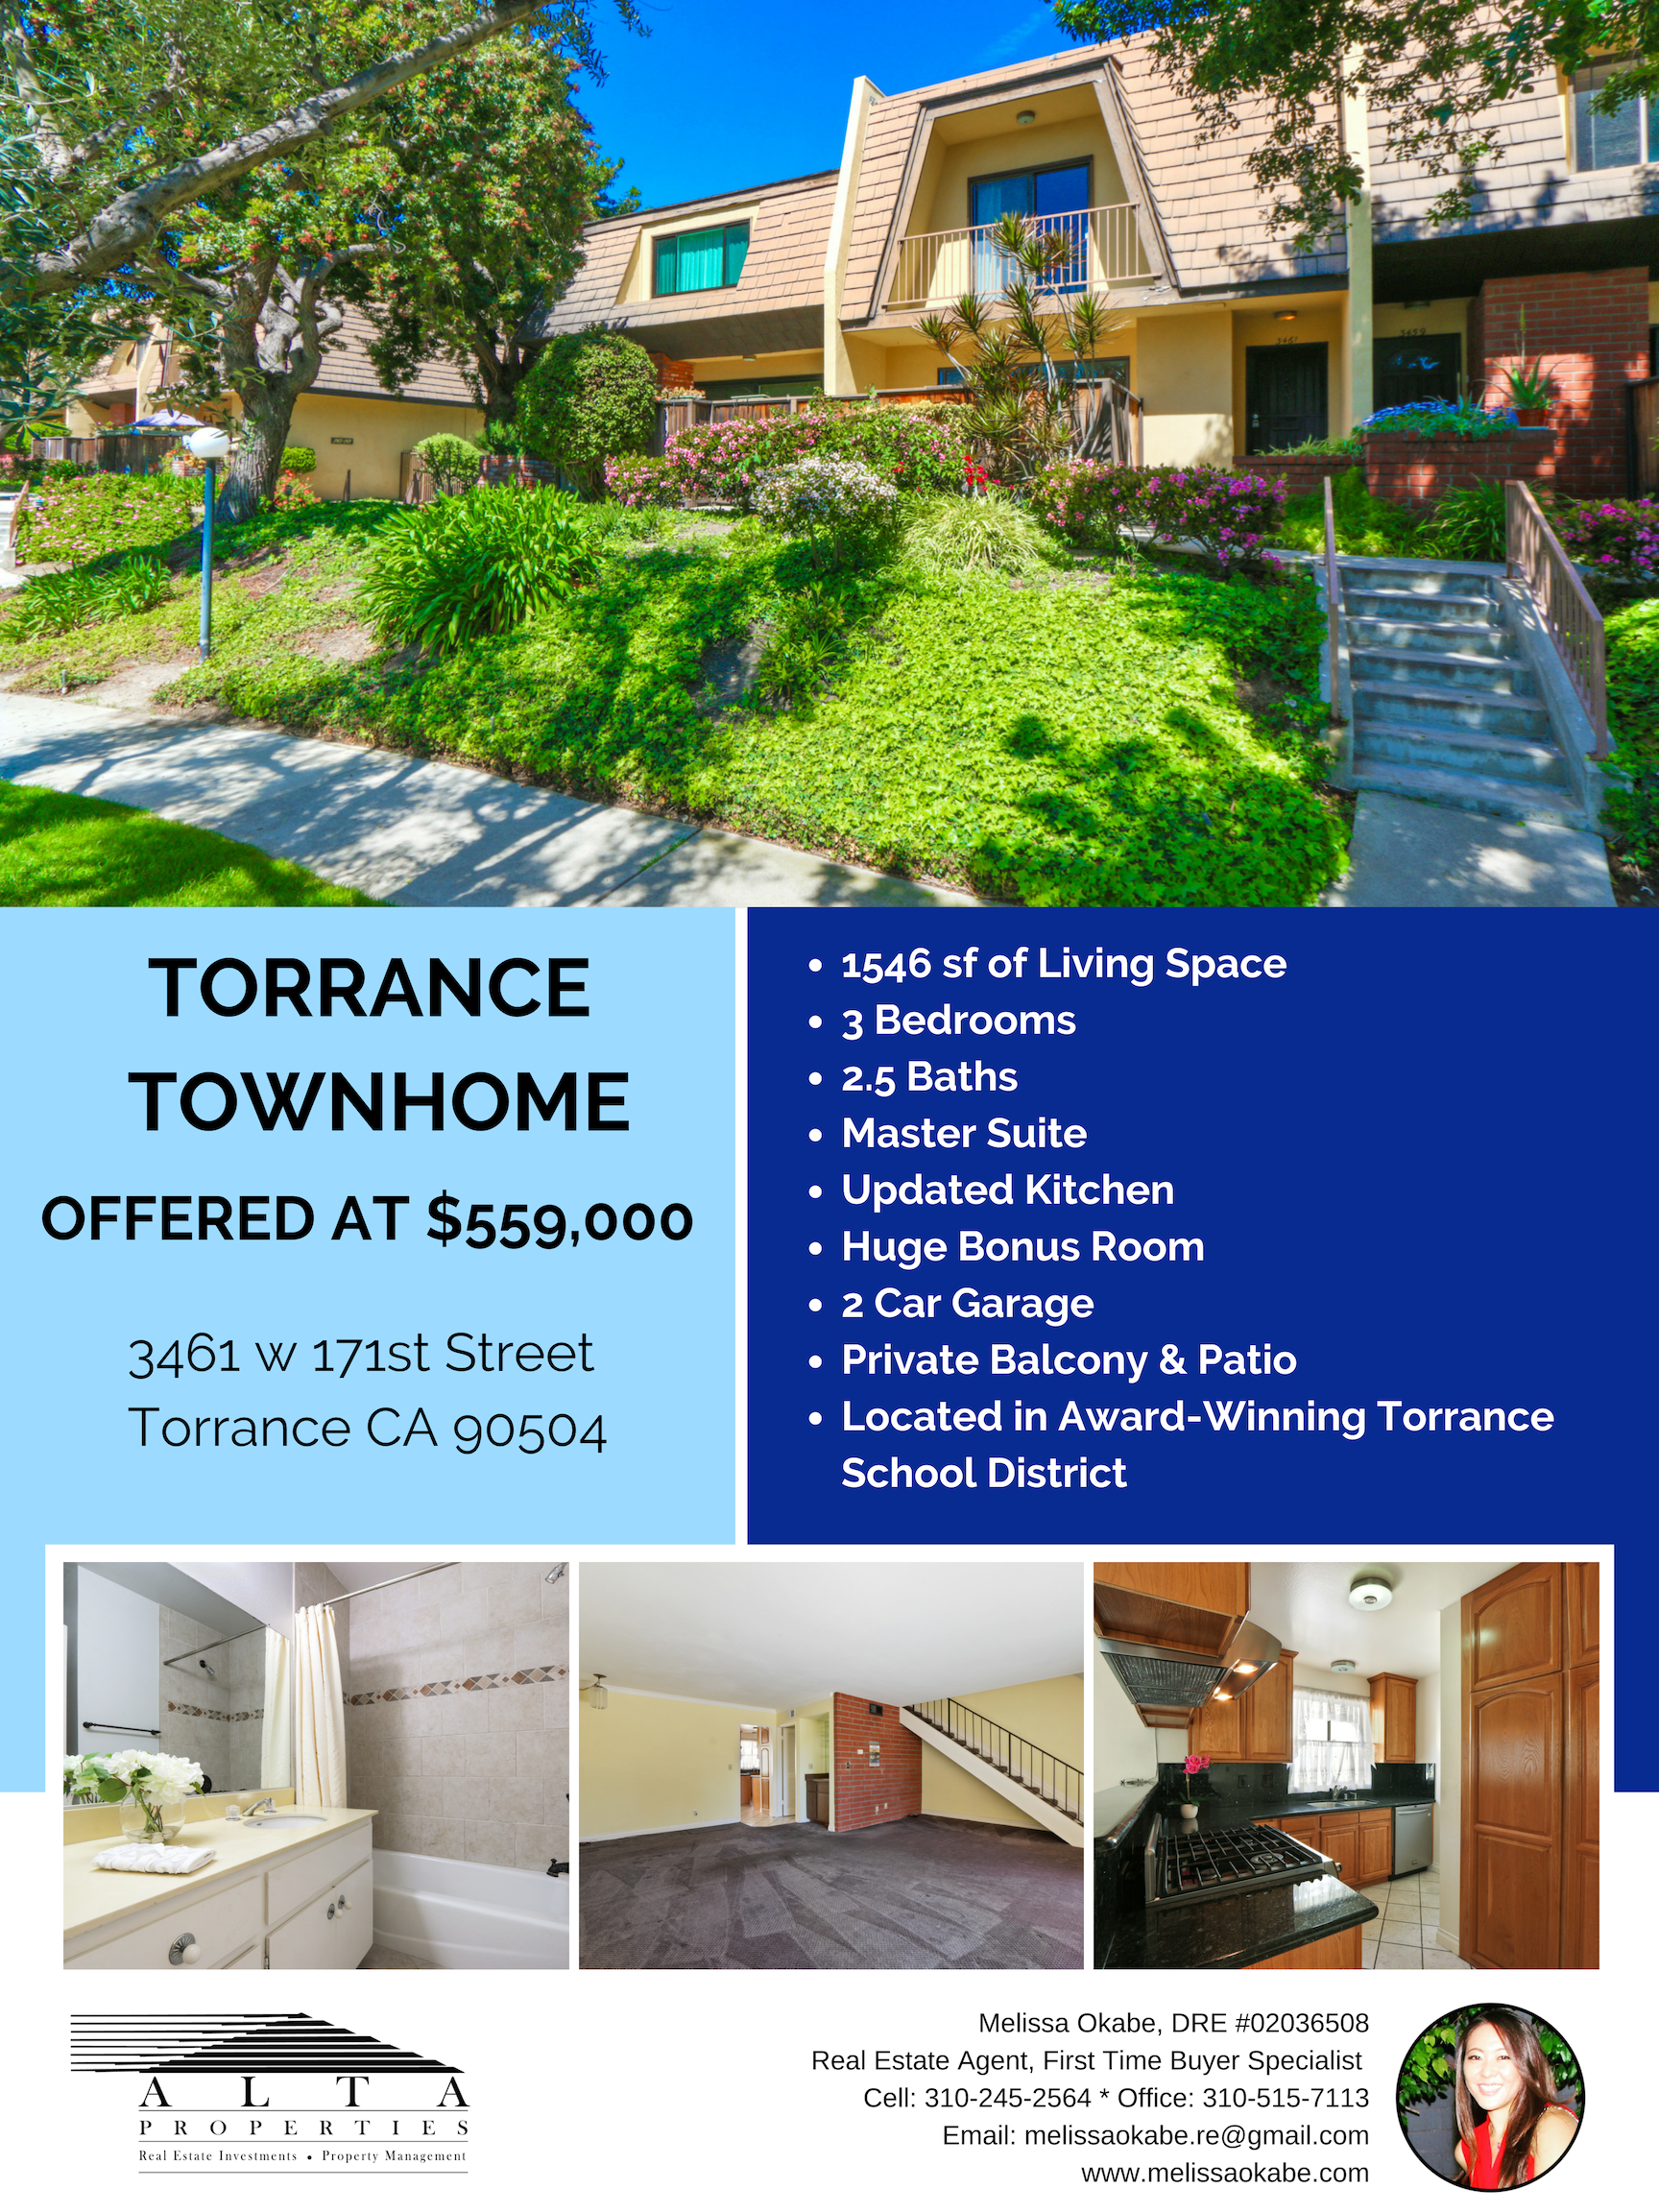 3461 w 171st st torrance ca 90504 poster.png